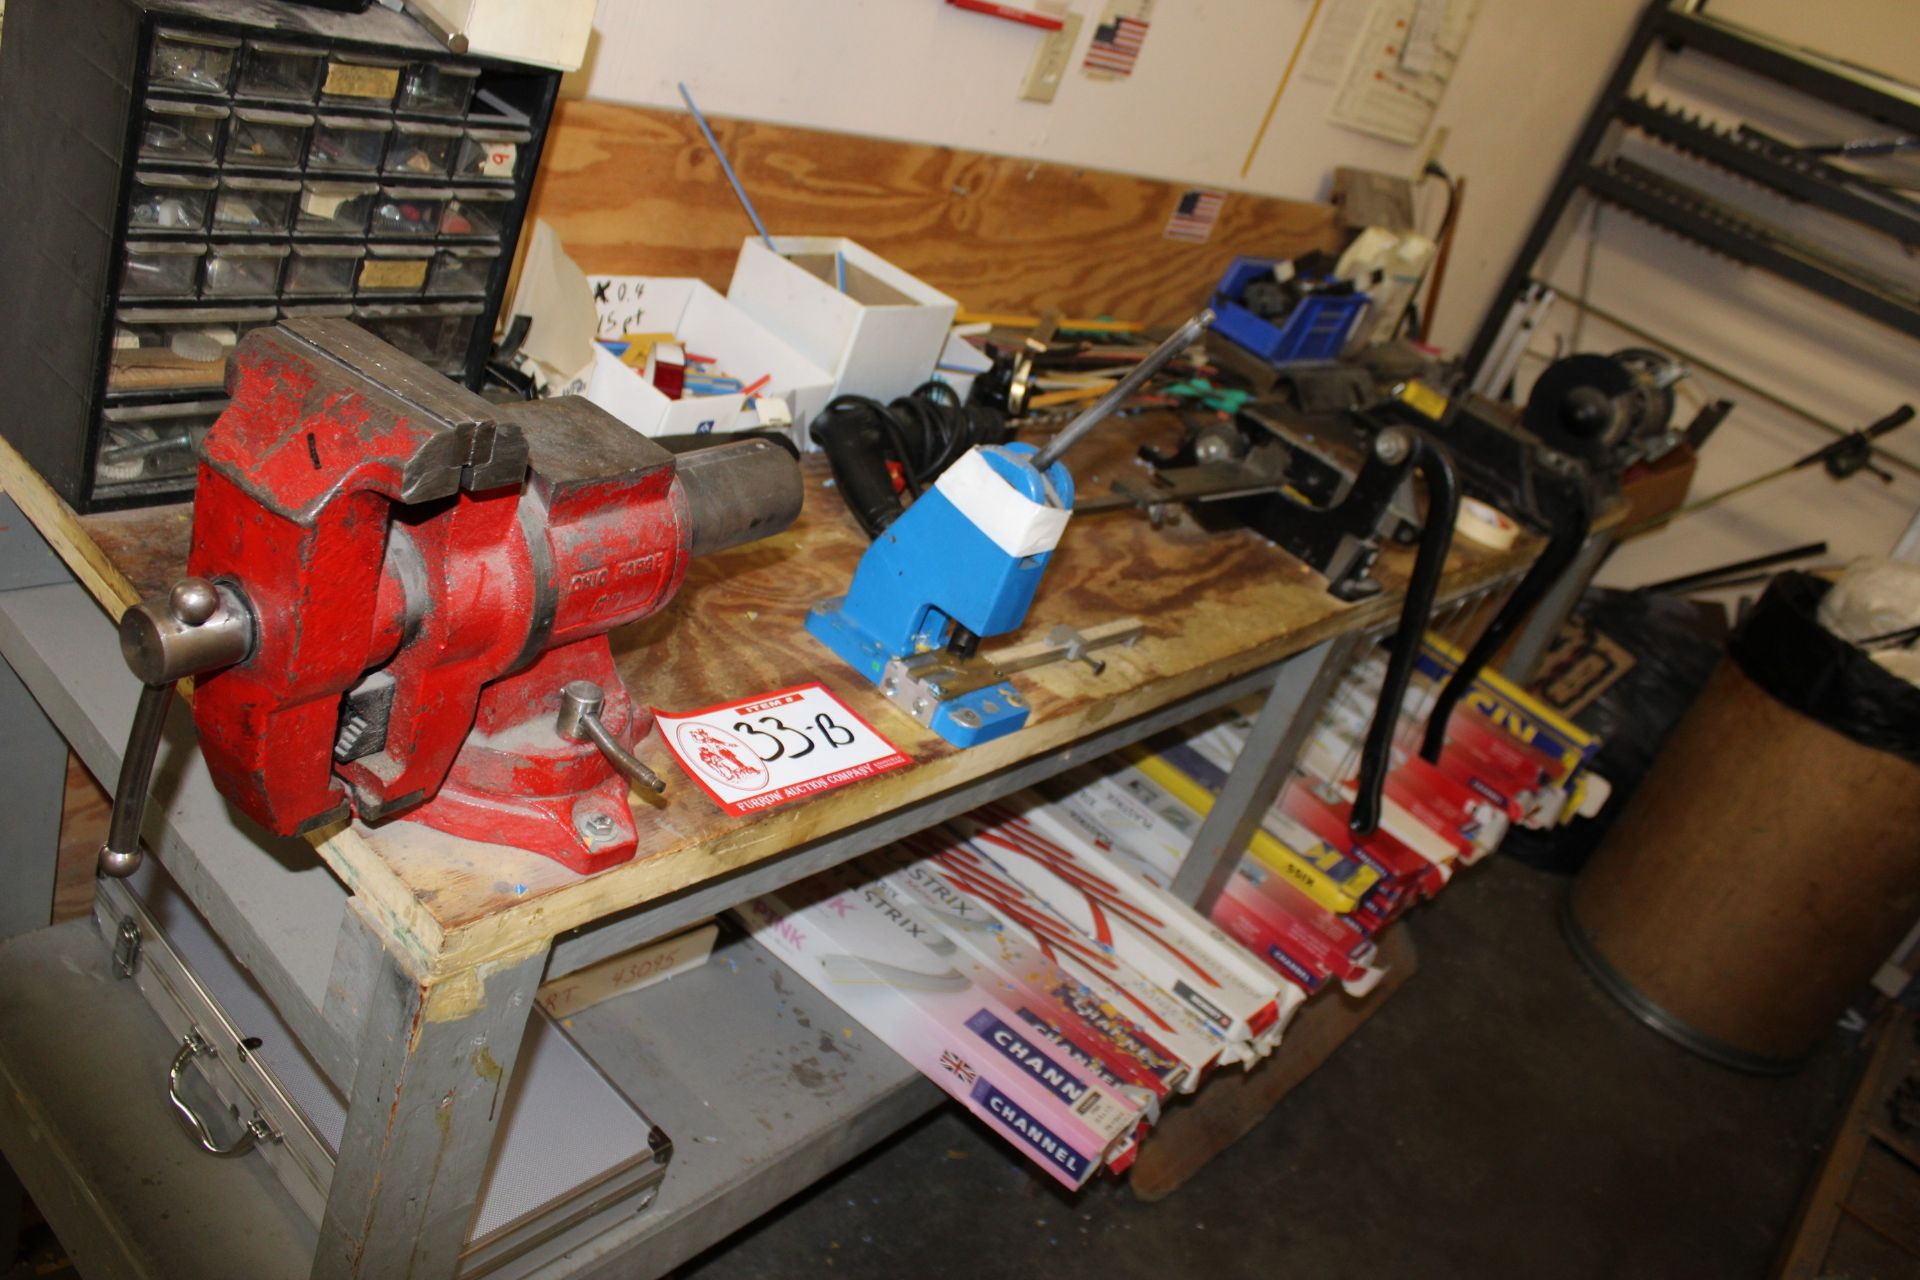 Lot 33b - Various Size Channel, Lays, Cutters, Grinder, 6' Jaw Vise, Etc For Plate Press Equipment